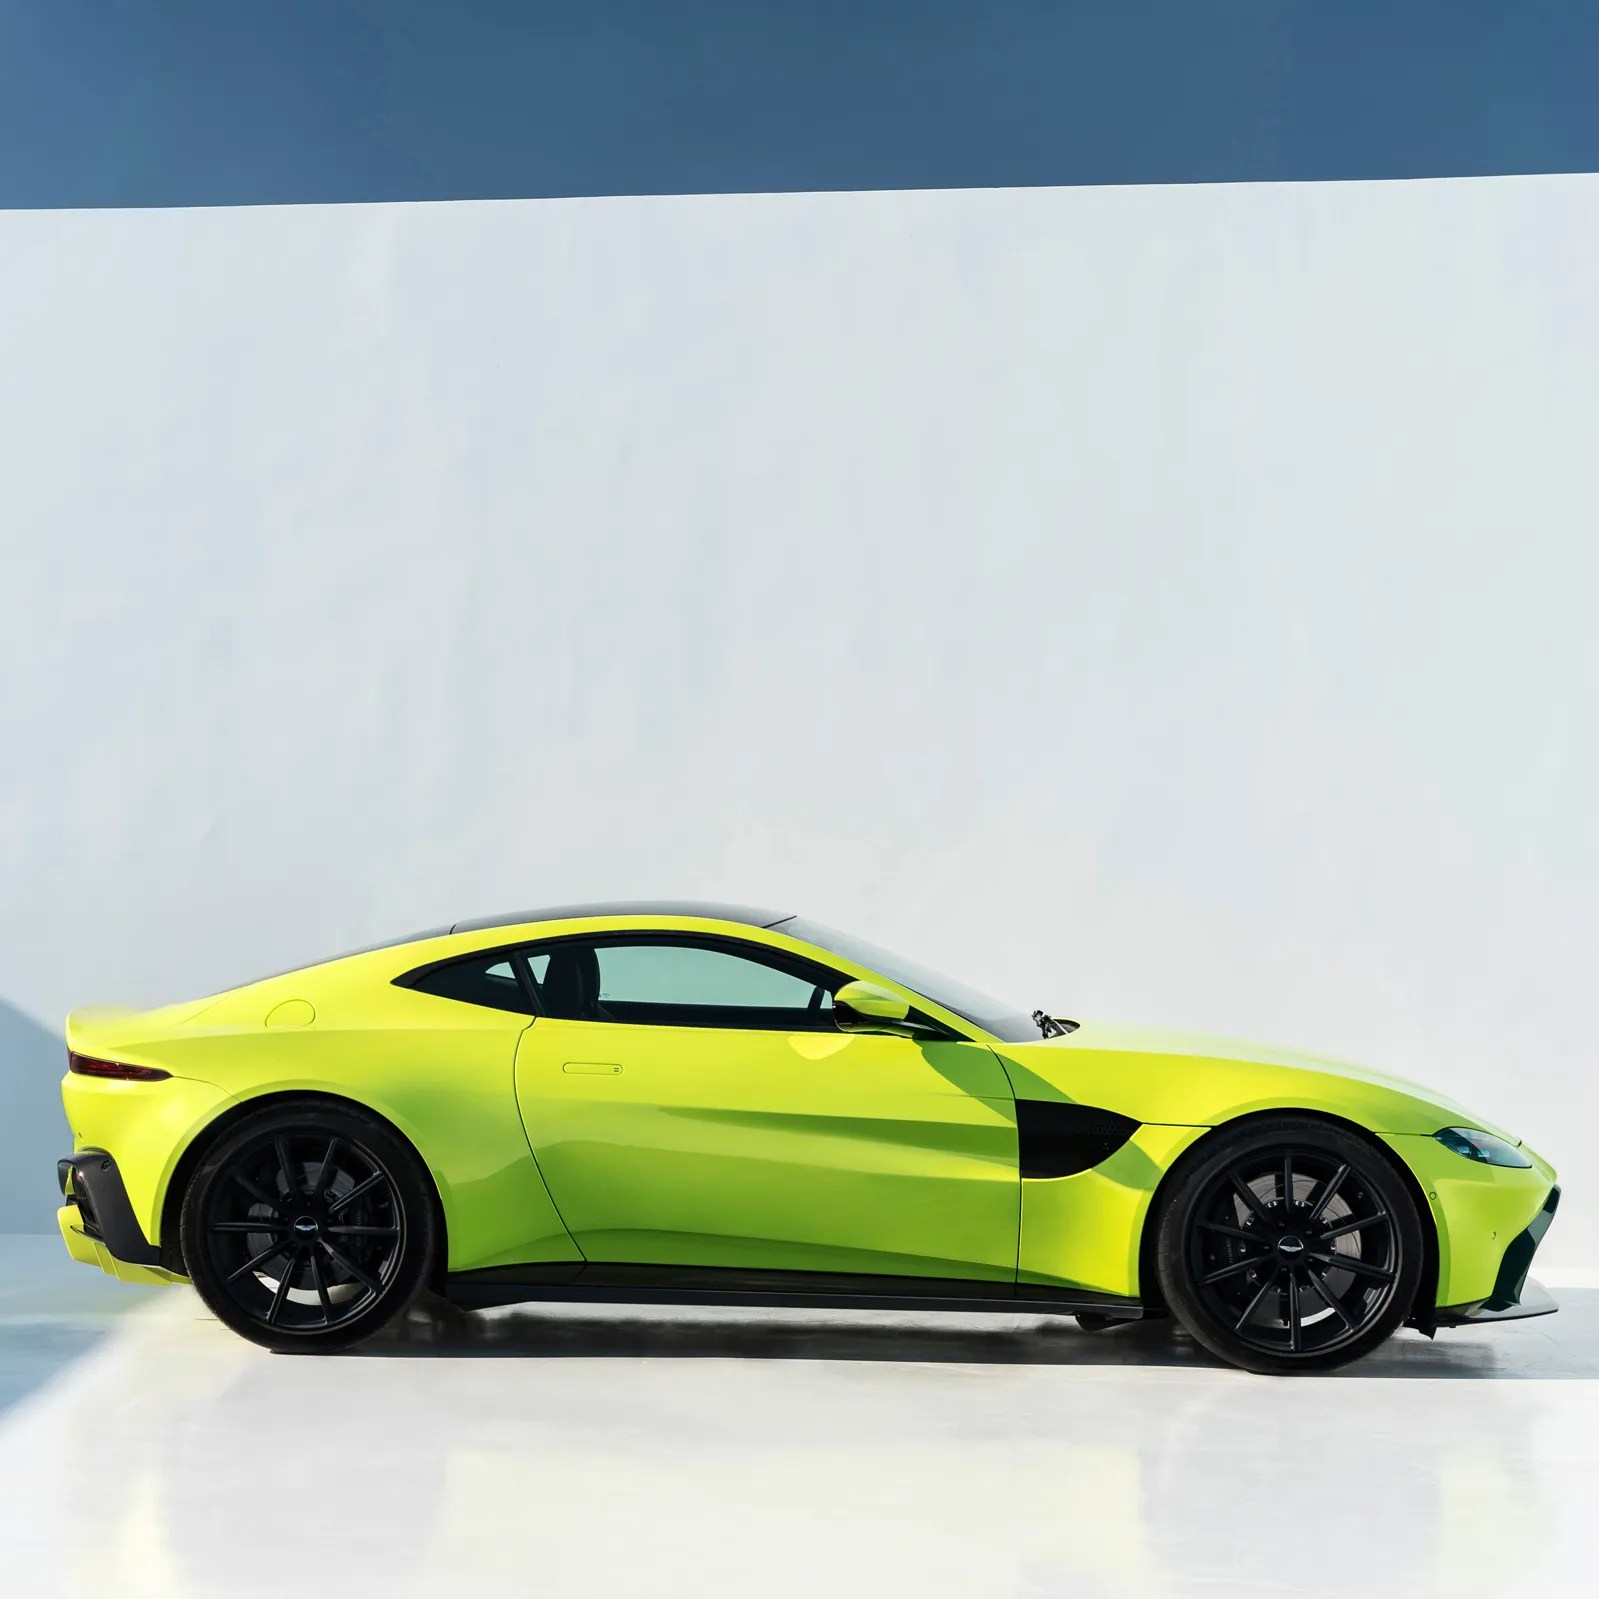 Sports Cars   Latest News  Photos   Videos   WIRED Aston Martin Rolls Out Its Smartest  Affordable  Car Yet